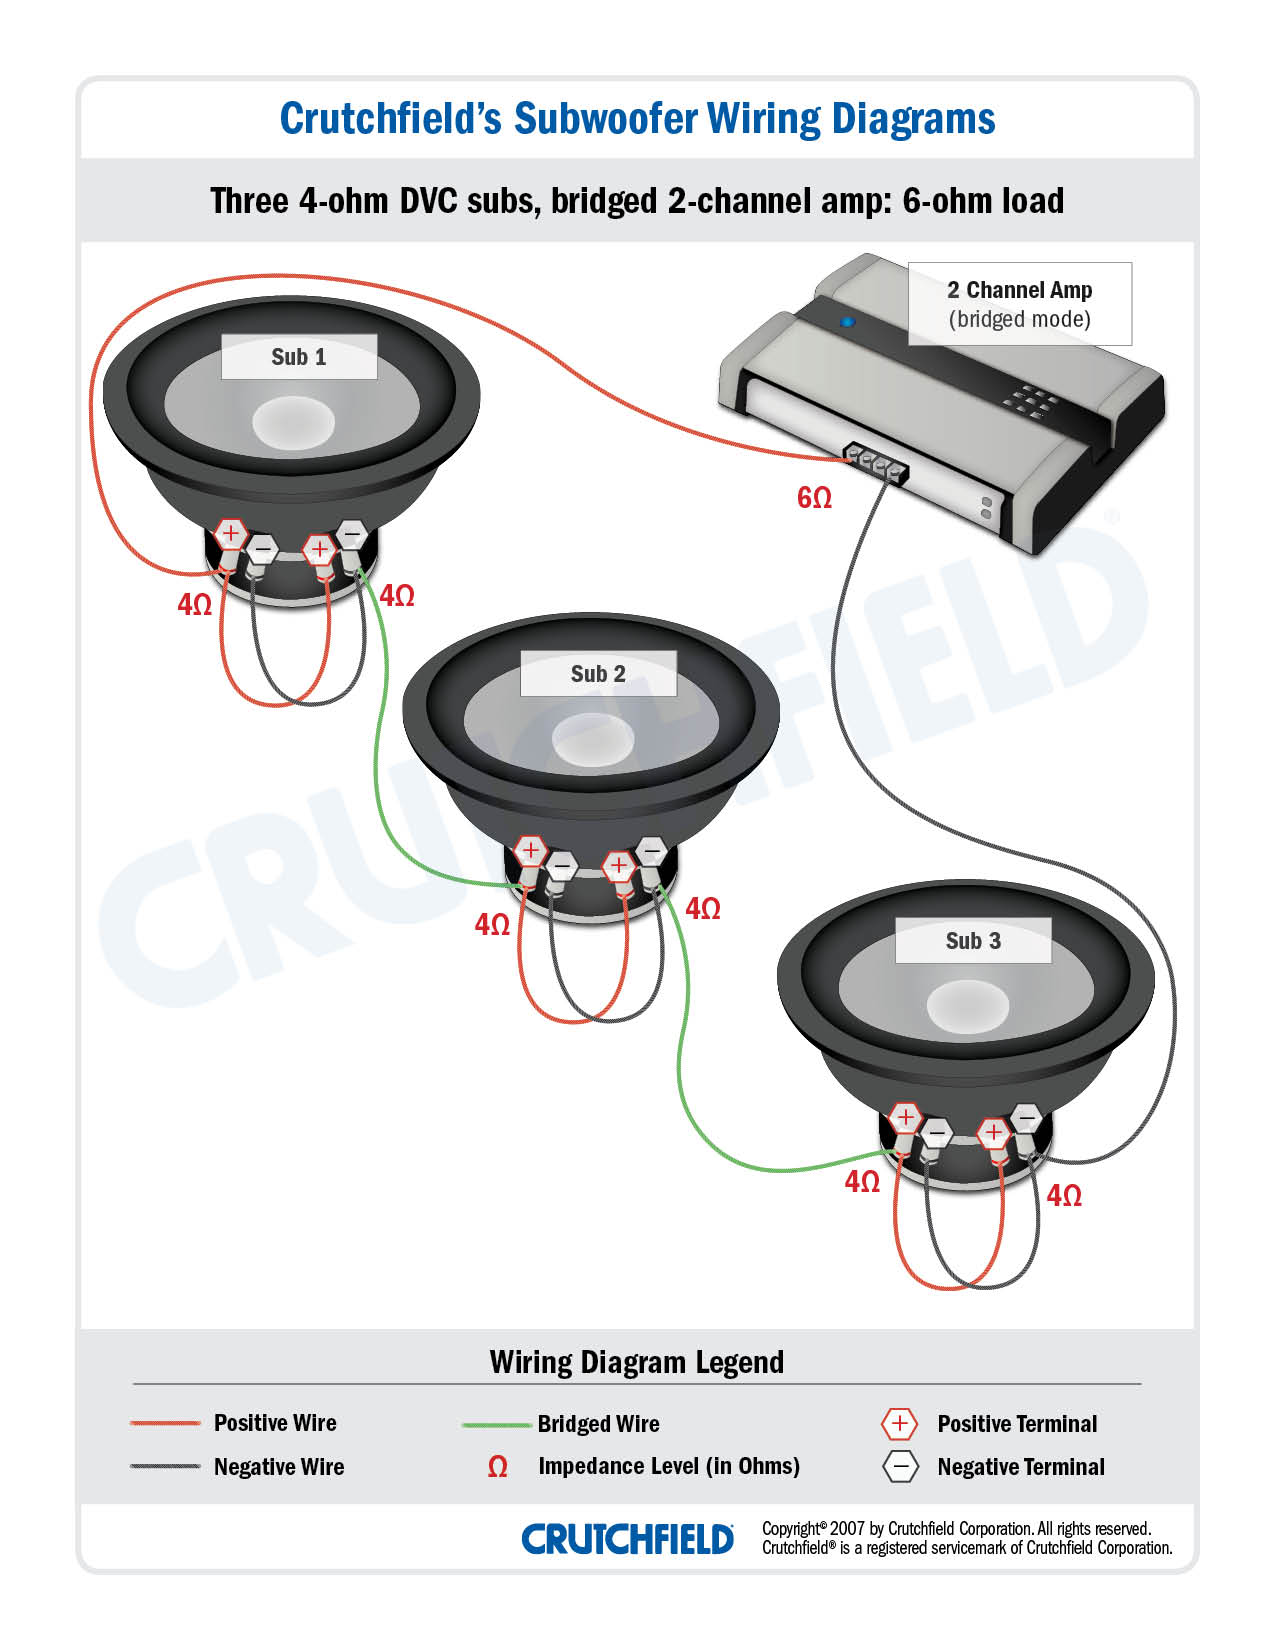 3 DVC 4 ohm 2 ch wiring diagram for kicker led speakers readingrat net kicker led speaker wiring diagram at creativeand.co